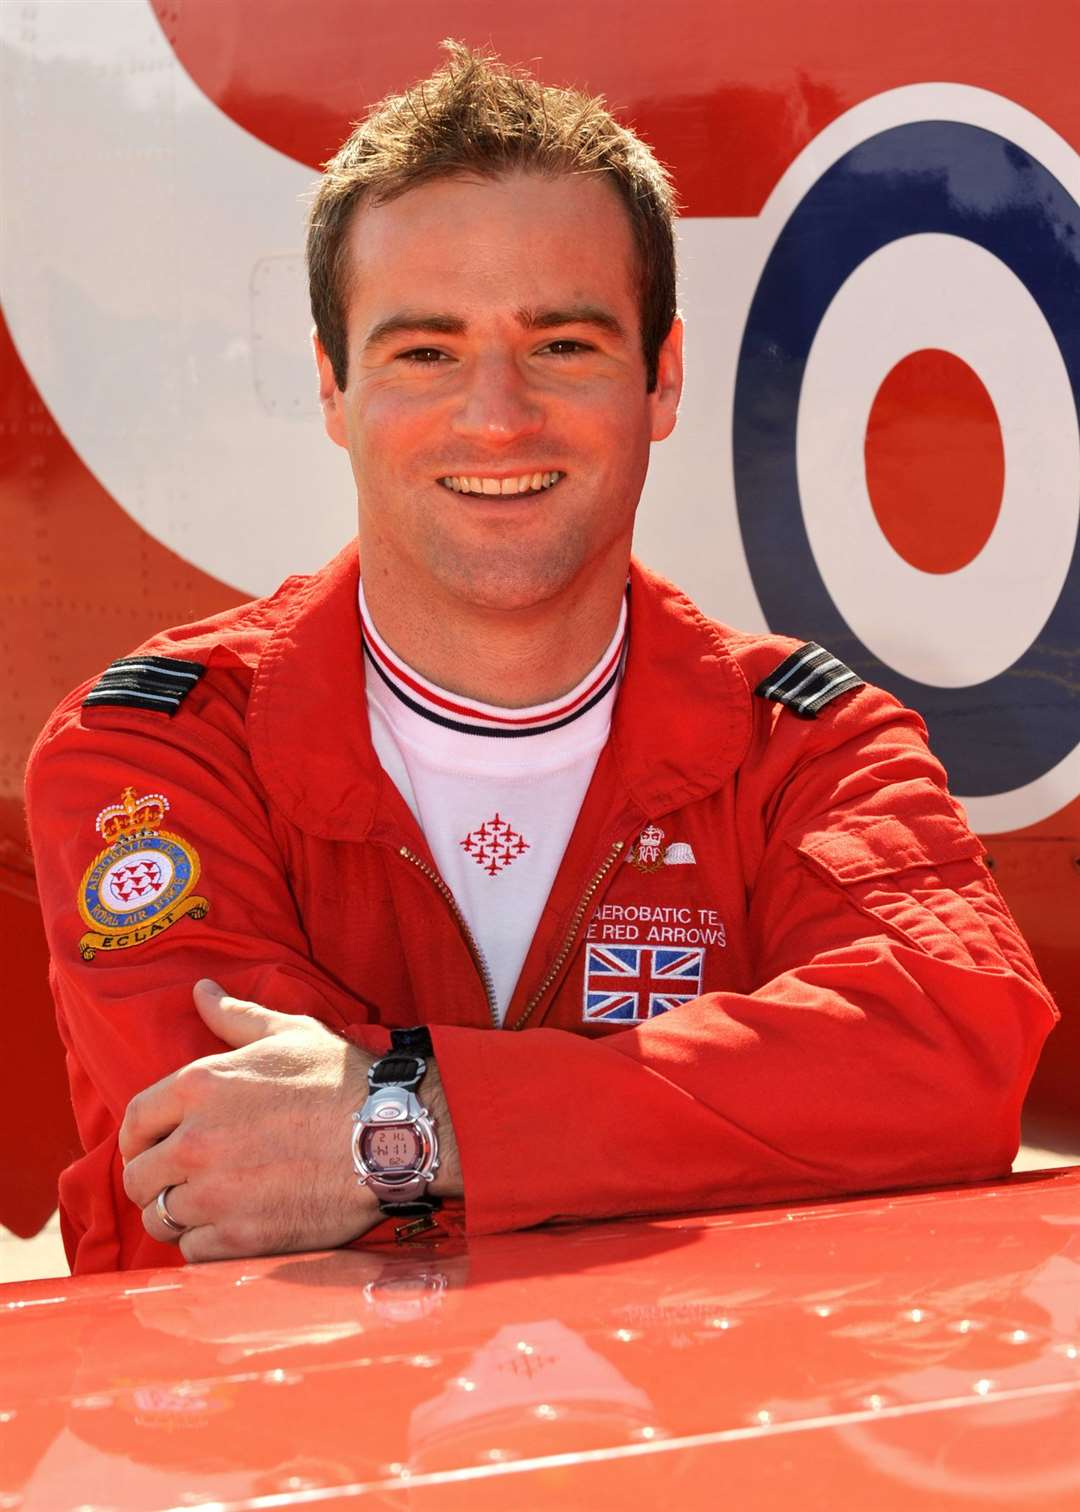 Flt Lt Jon Egging died in an accident at the Bournemouth Airshow in 2011. Photo: Cpl Graham Taylor (RAF)